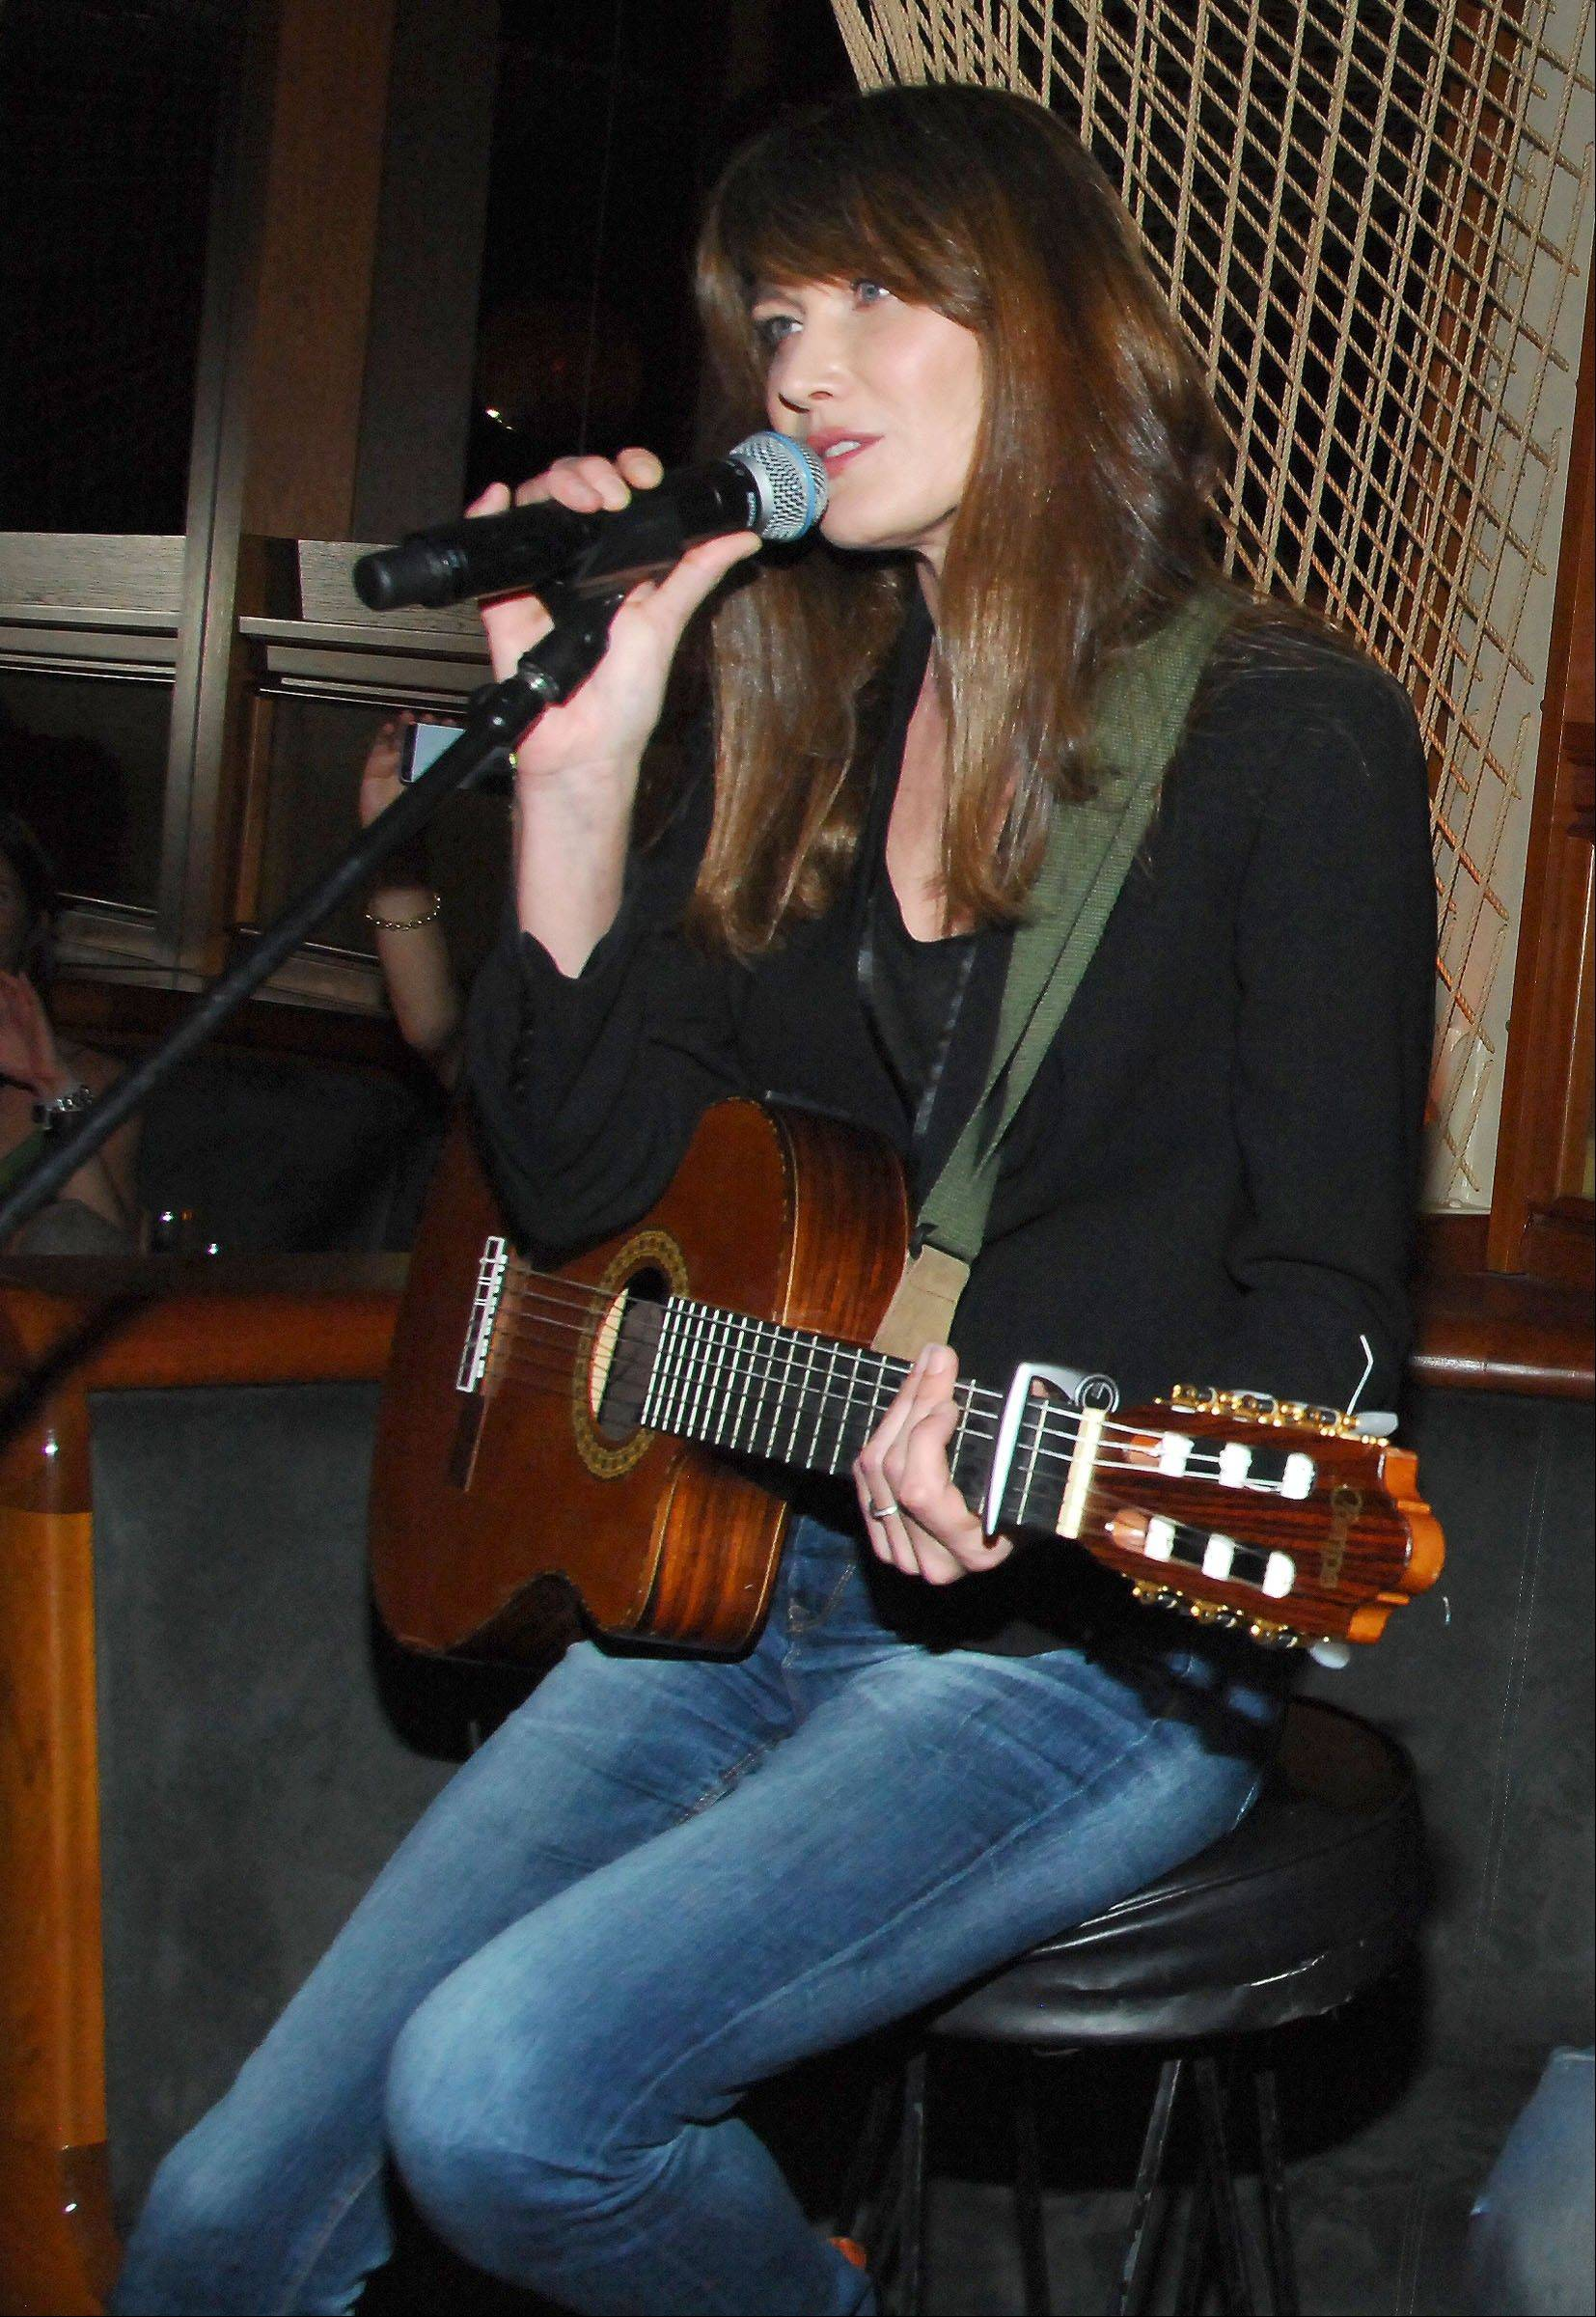 French singer Carla Bruni performs at the Royalton Hotel in New York.